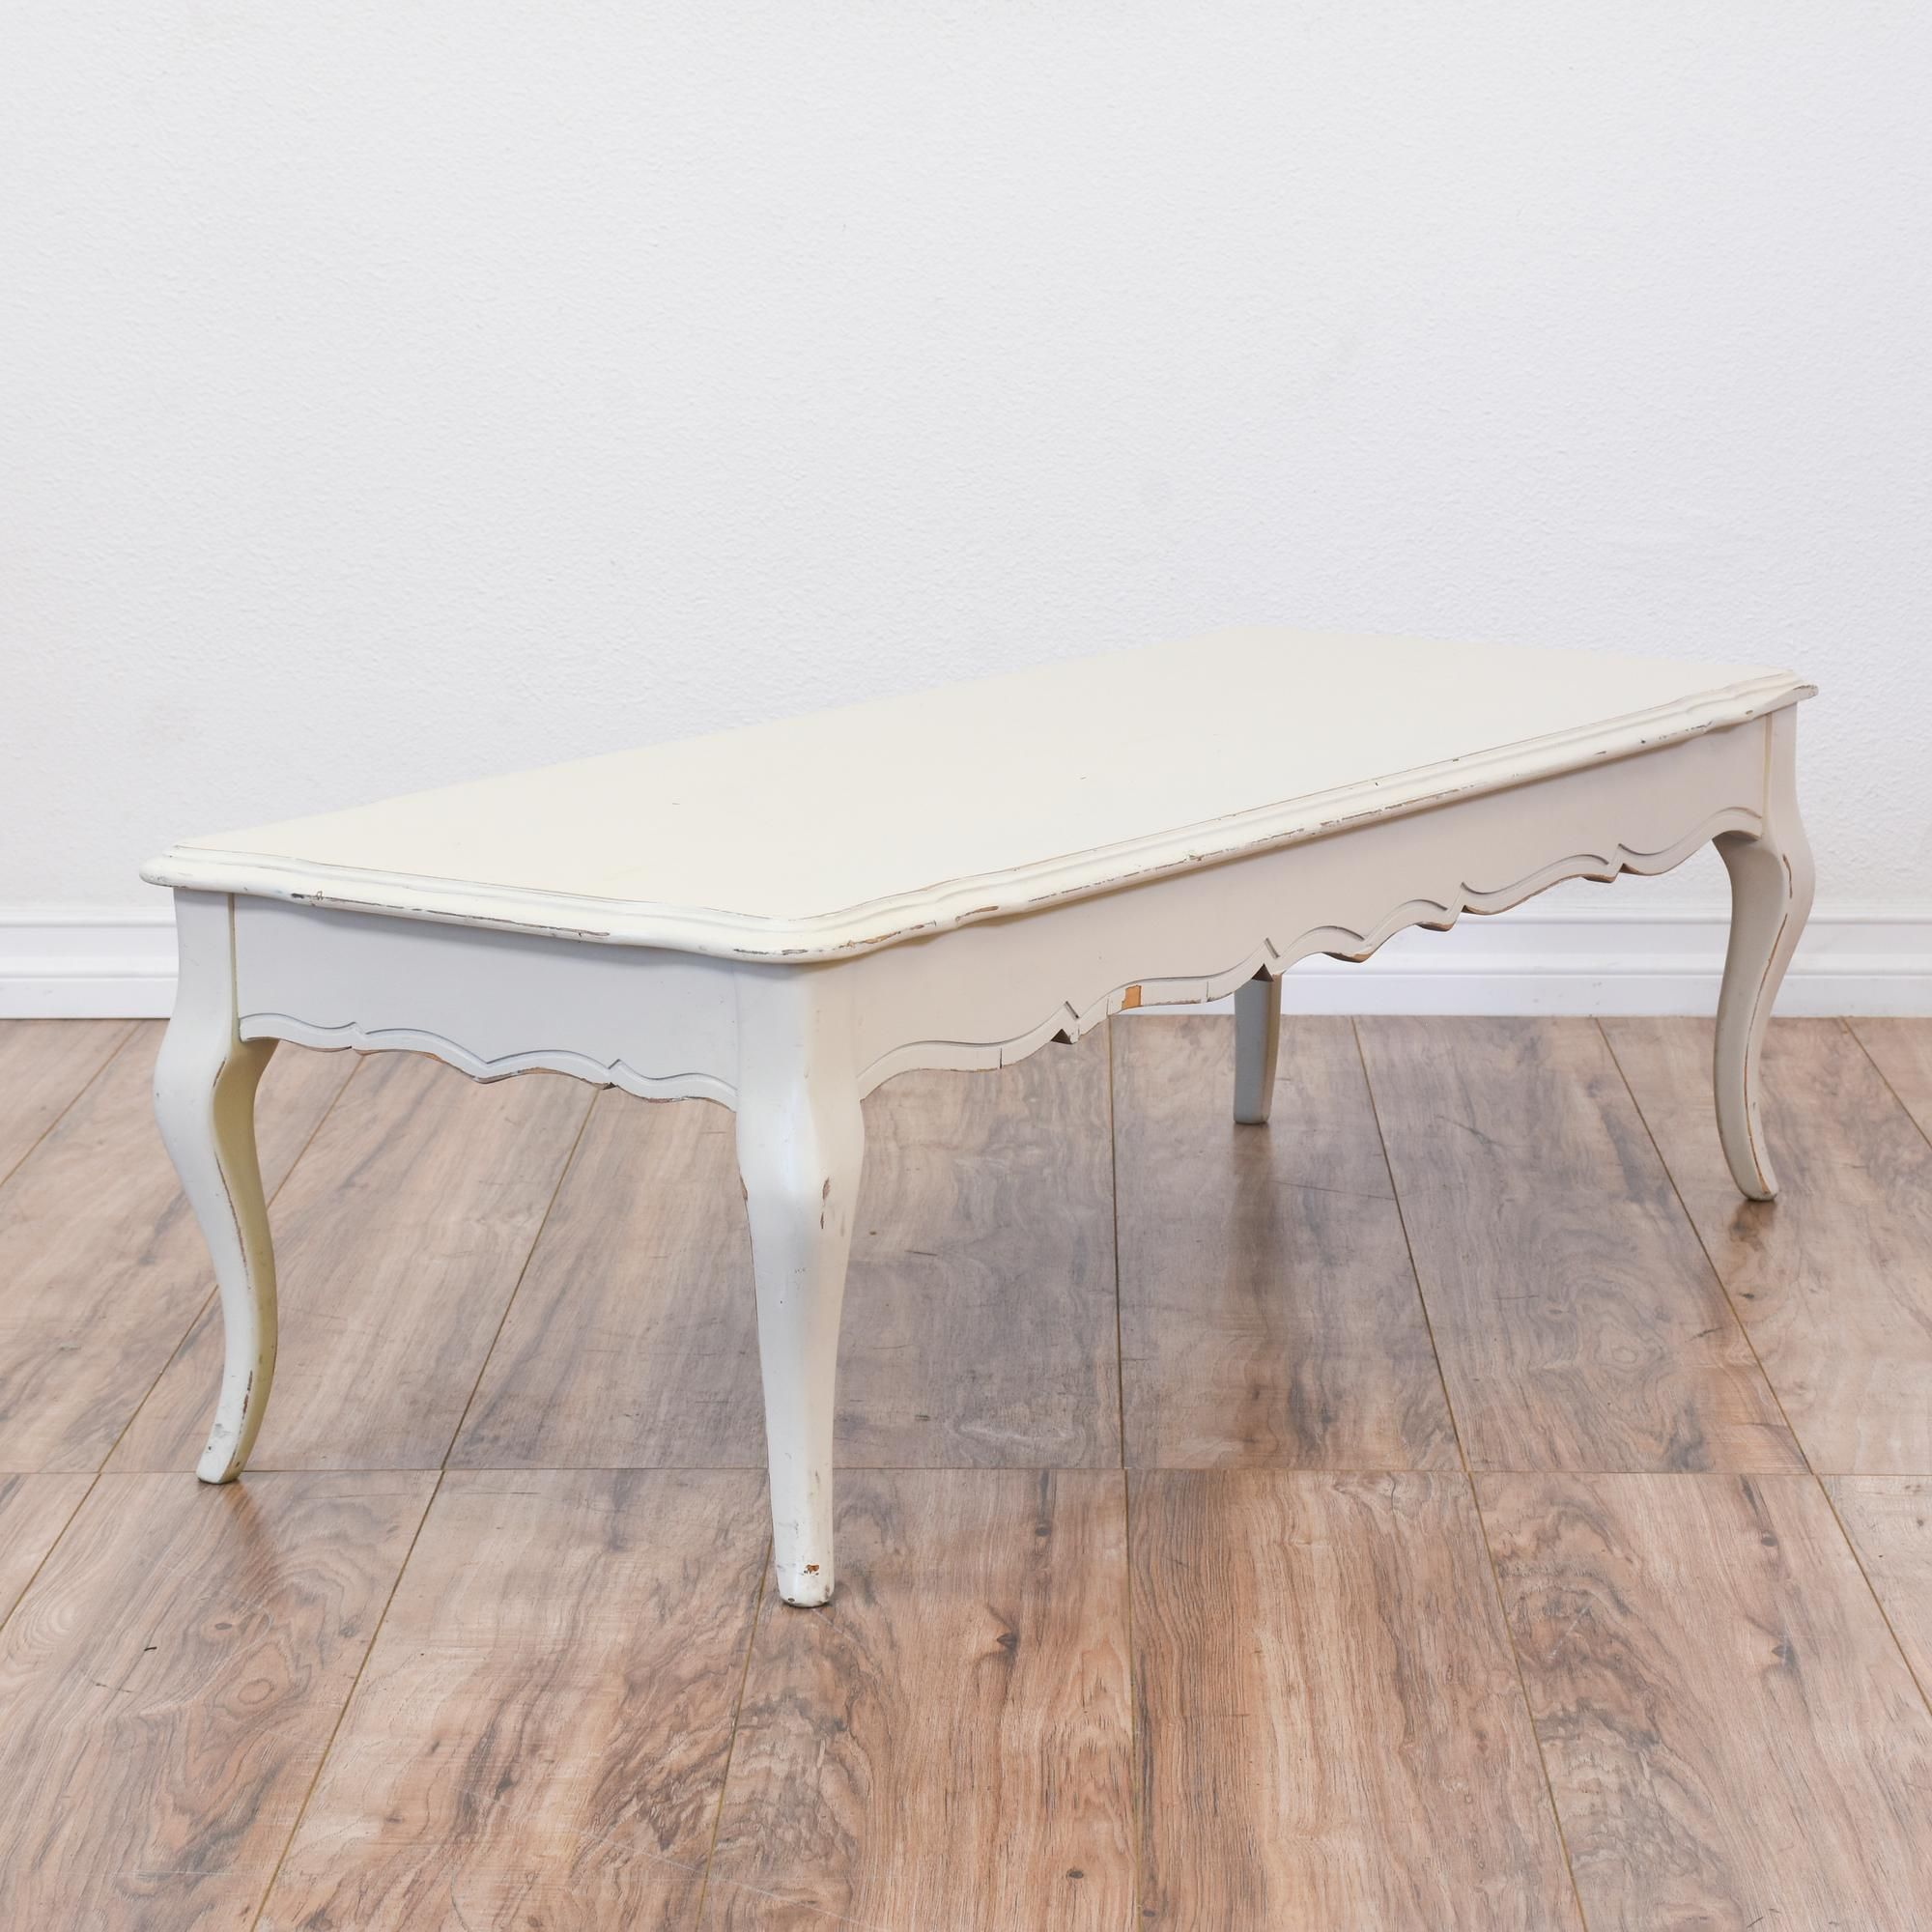 This shabby chic coffee table is featured in a solid wood with a